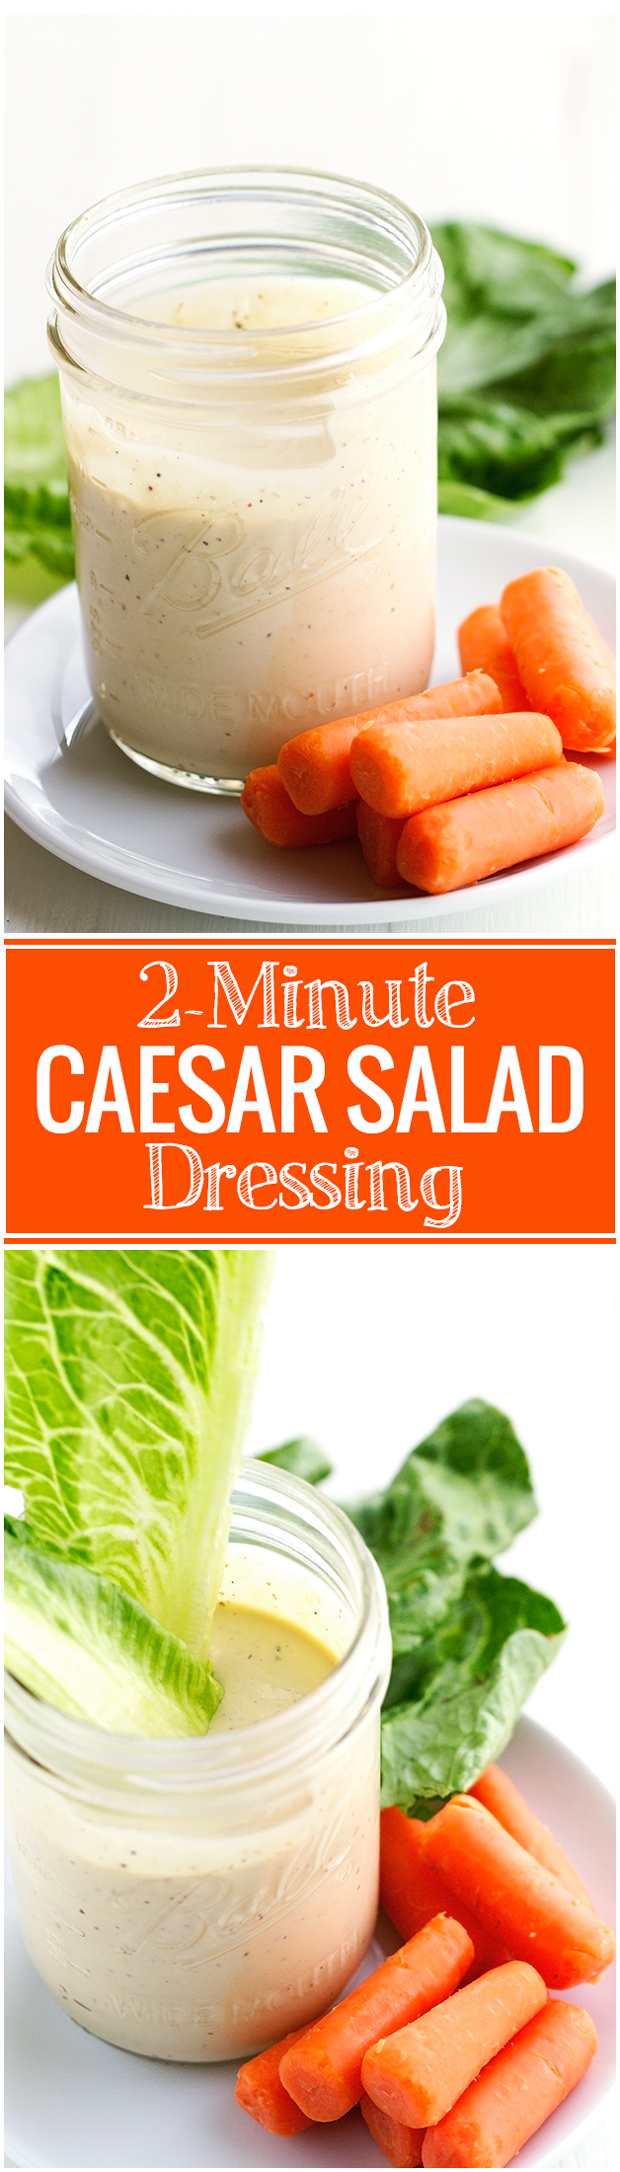 2-Minute Caesar Salad dressing that is THE BEST YOU'VE EVER HAD! #caesarsalad #caesarsaladdressing #caesardressing | Littlespicejar.com